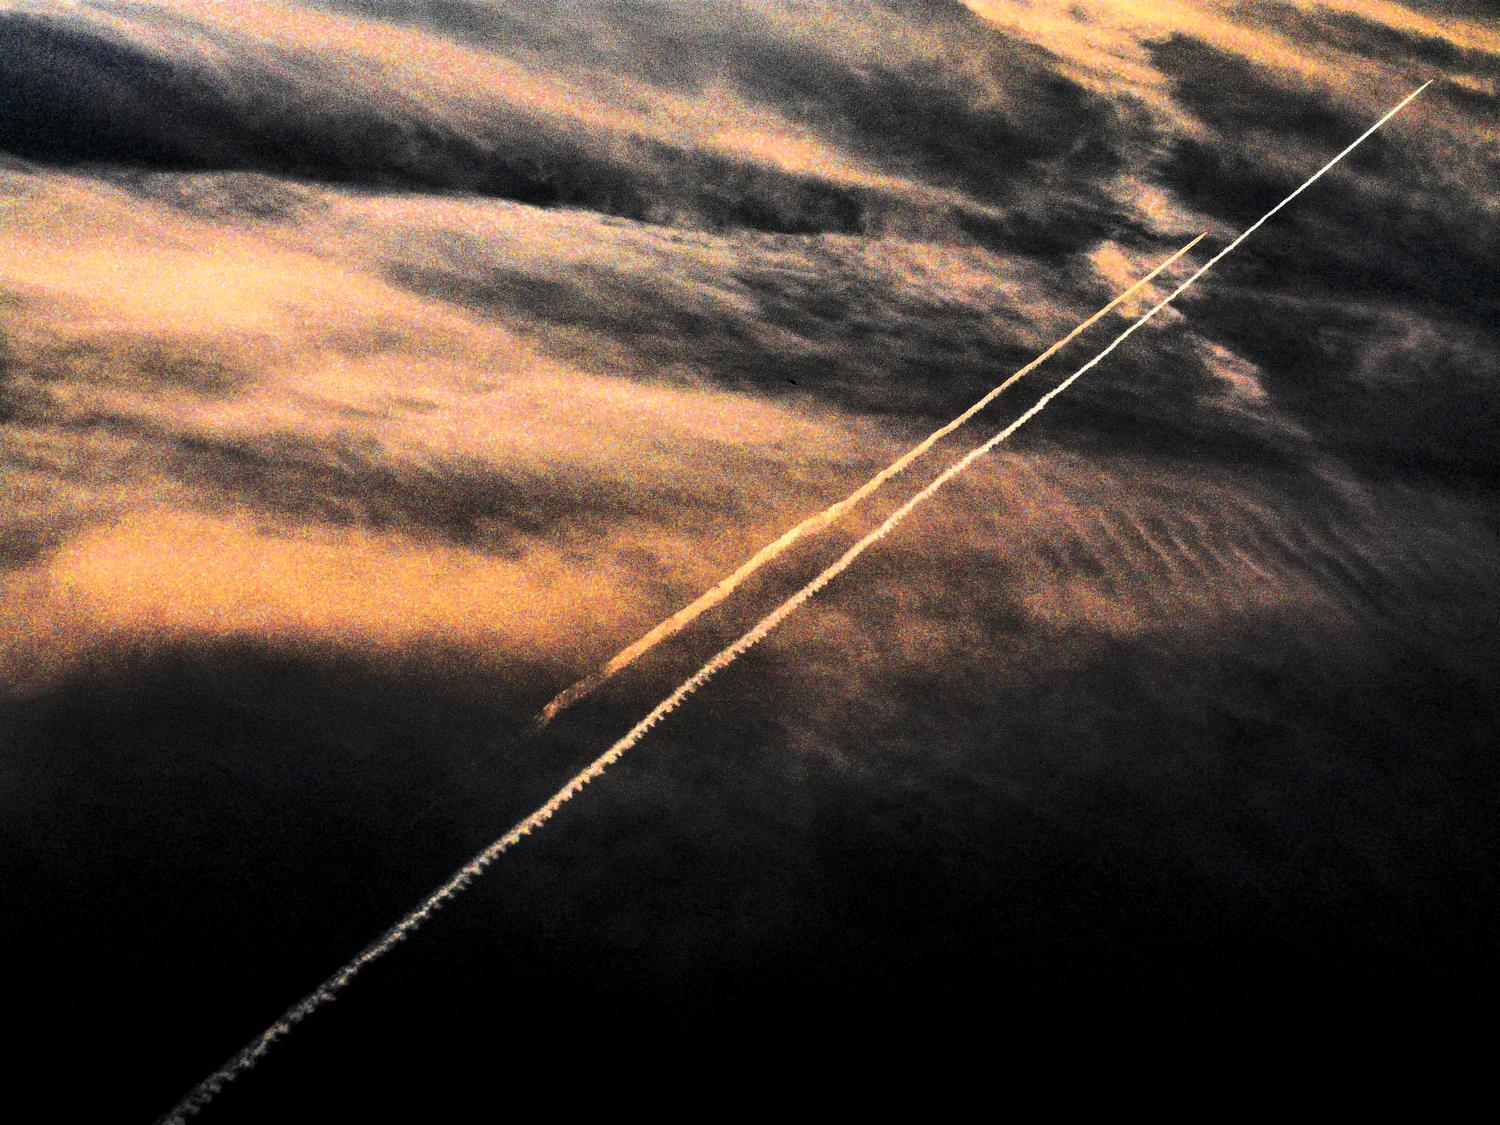 - Sky race - Panasonic DMC-FZ18 - contrails against a dramatic evening sky - Tony Karp, design, art, photography, techno-impressionist, techno-impressionism, aerial photography , drone , drones , dji , mavic pro , video , 3D printing - Books -